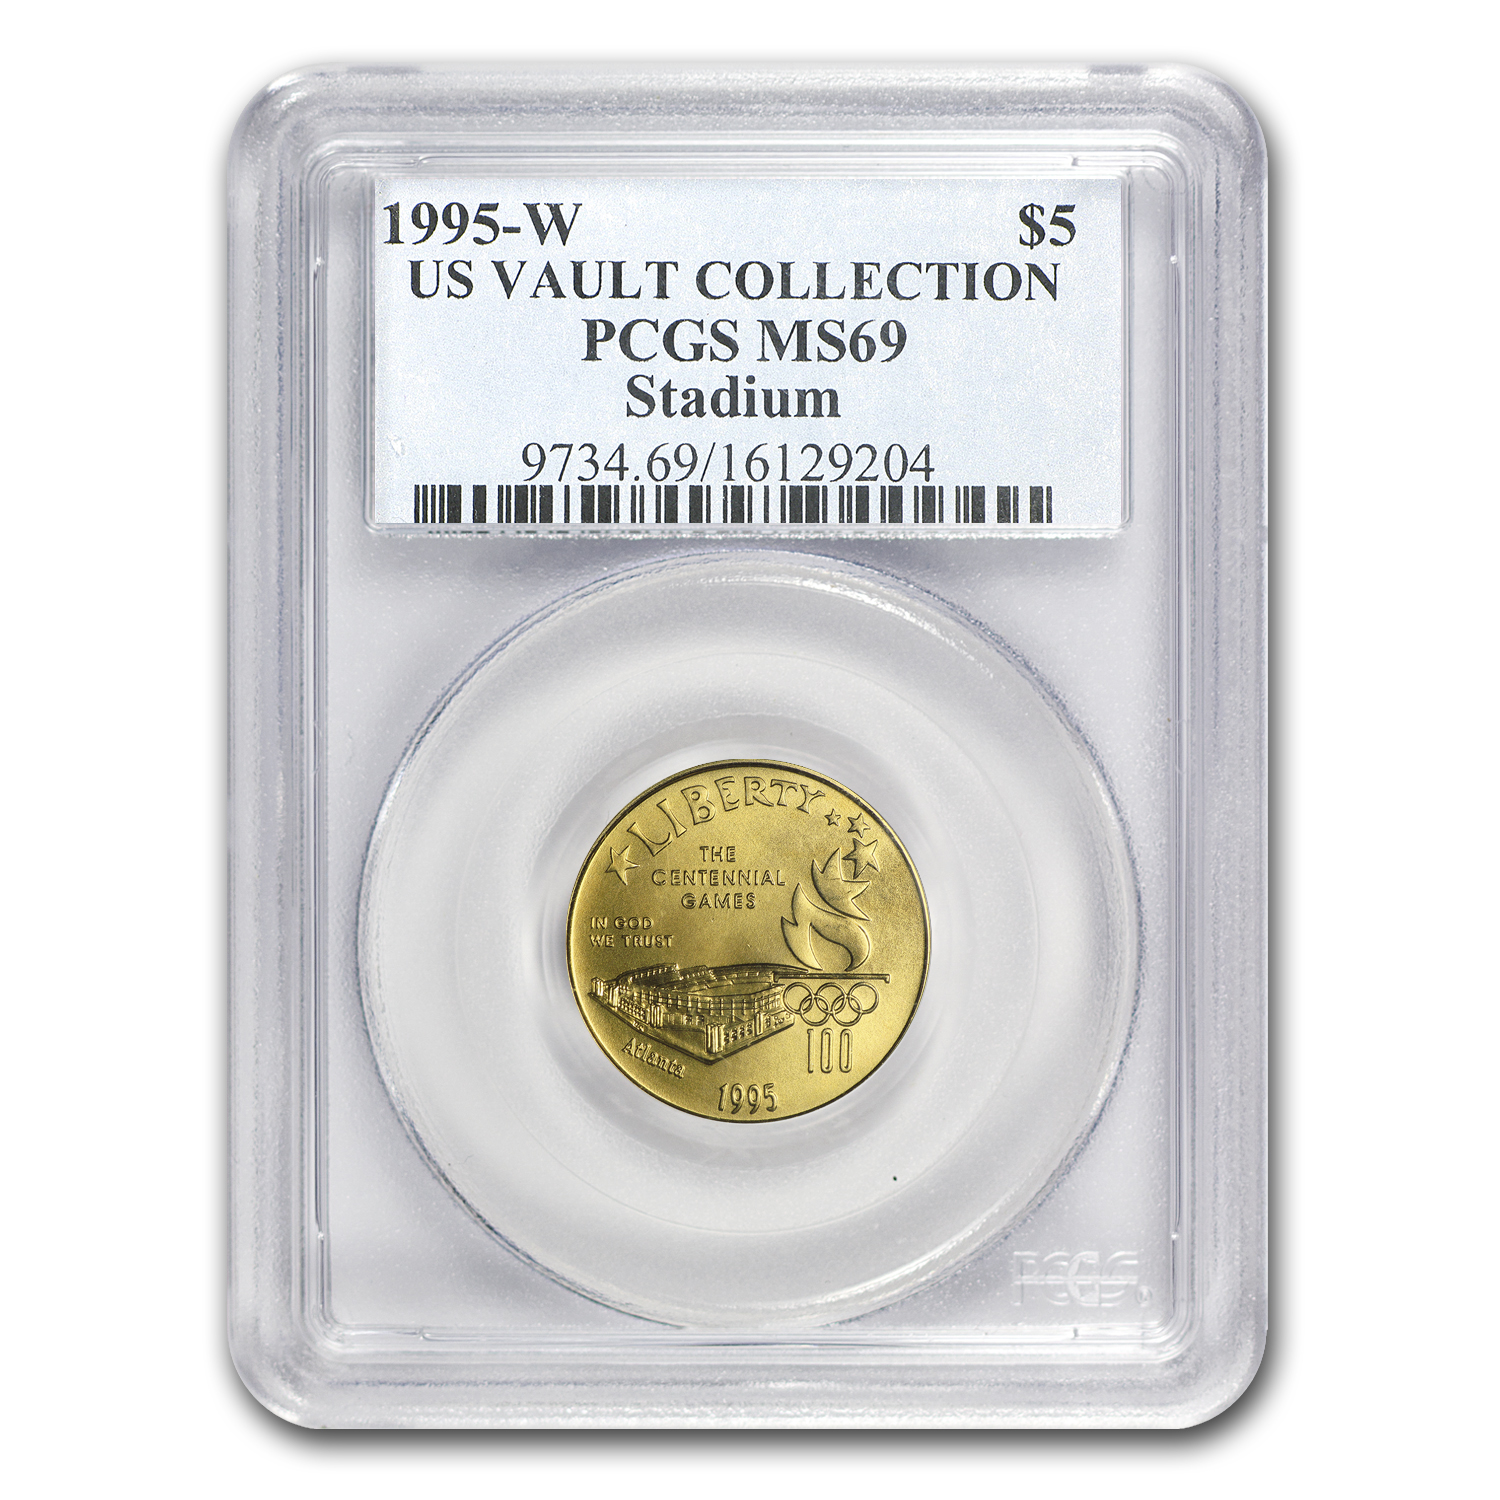 1995-W Gold $5 Commemorative Olympic Stadium MS-69 PCGS